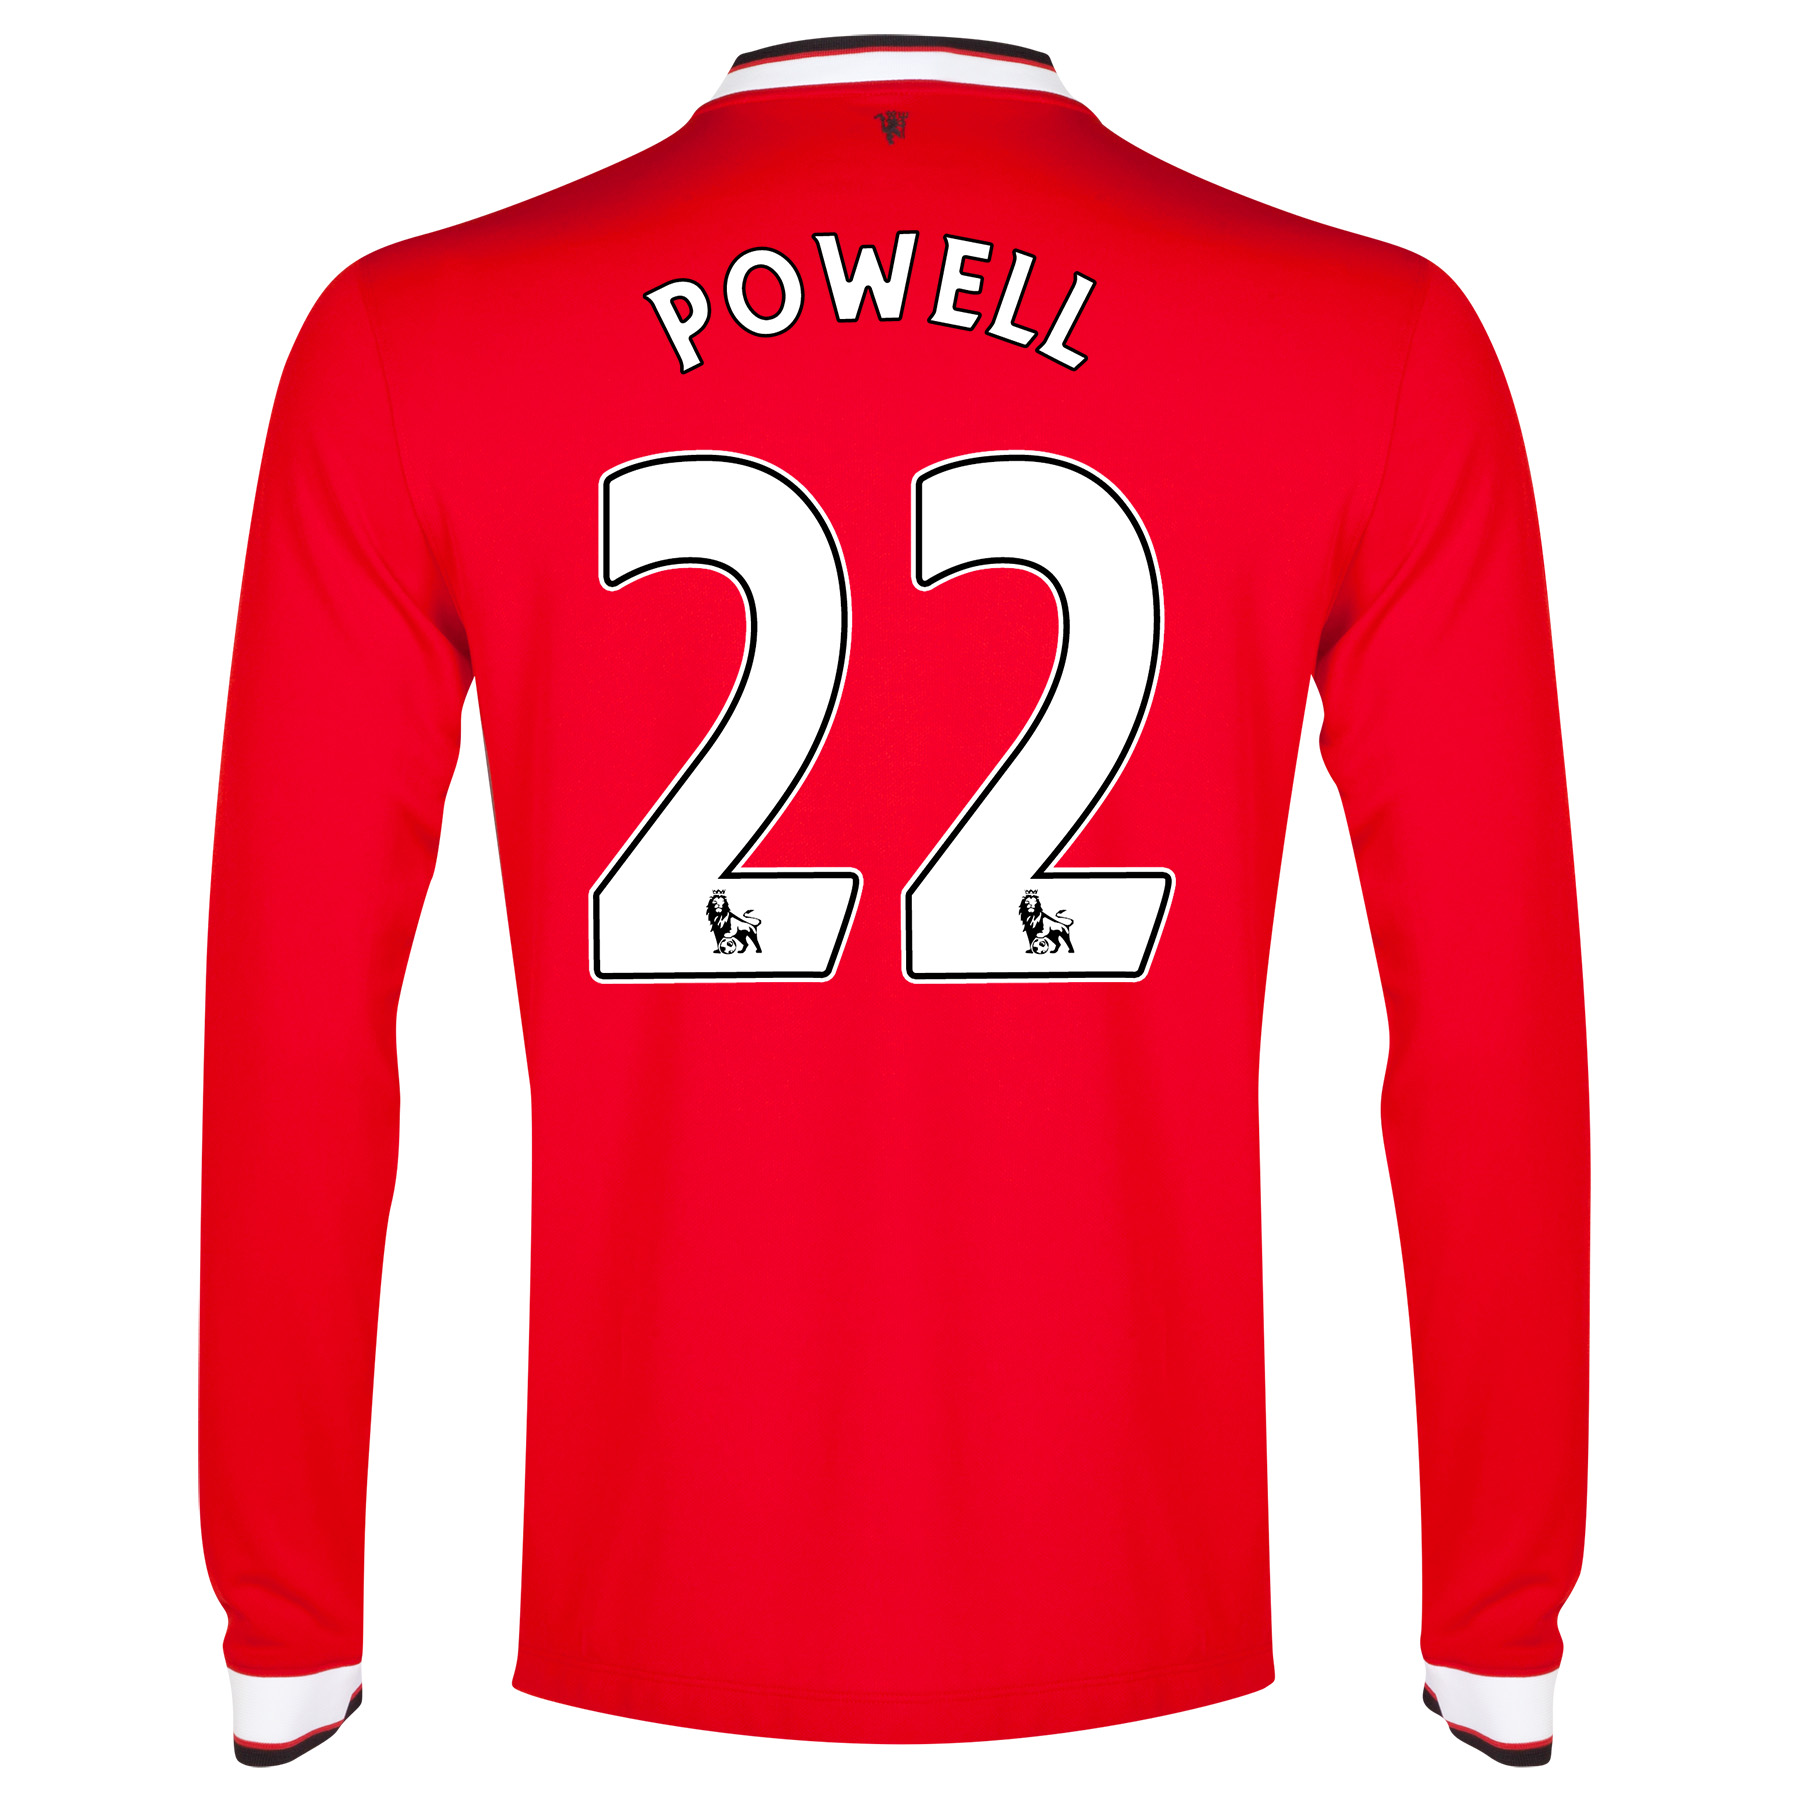 Manchester United Home Shirt 2014/15 - Long Sleeve Red with Powell 22 printing